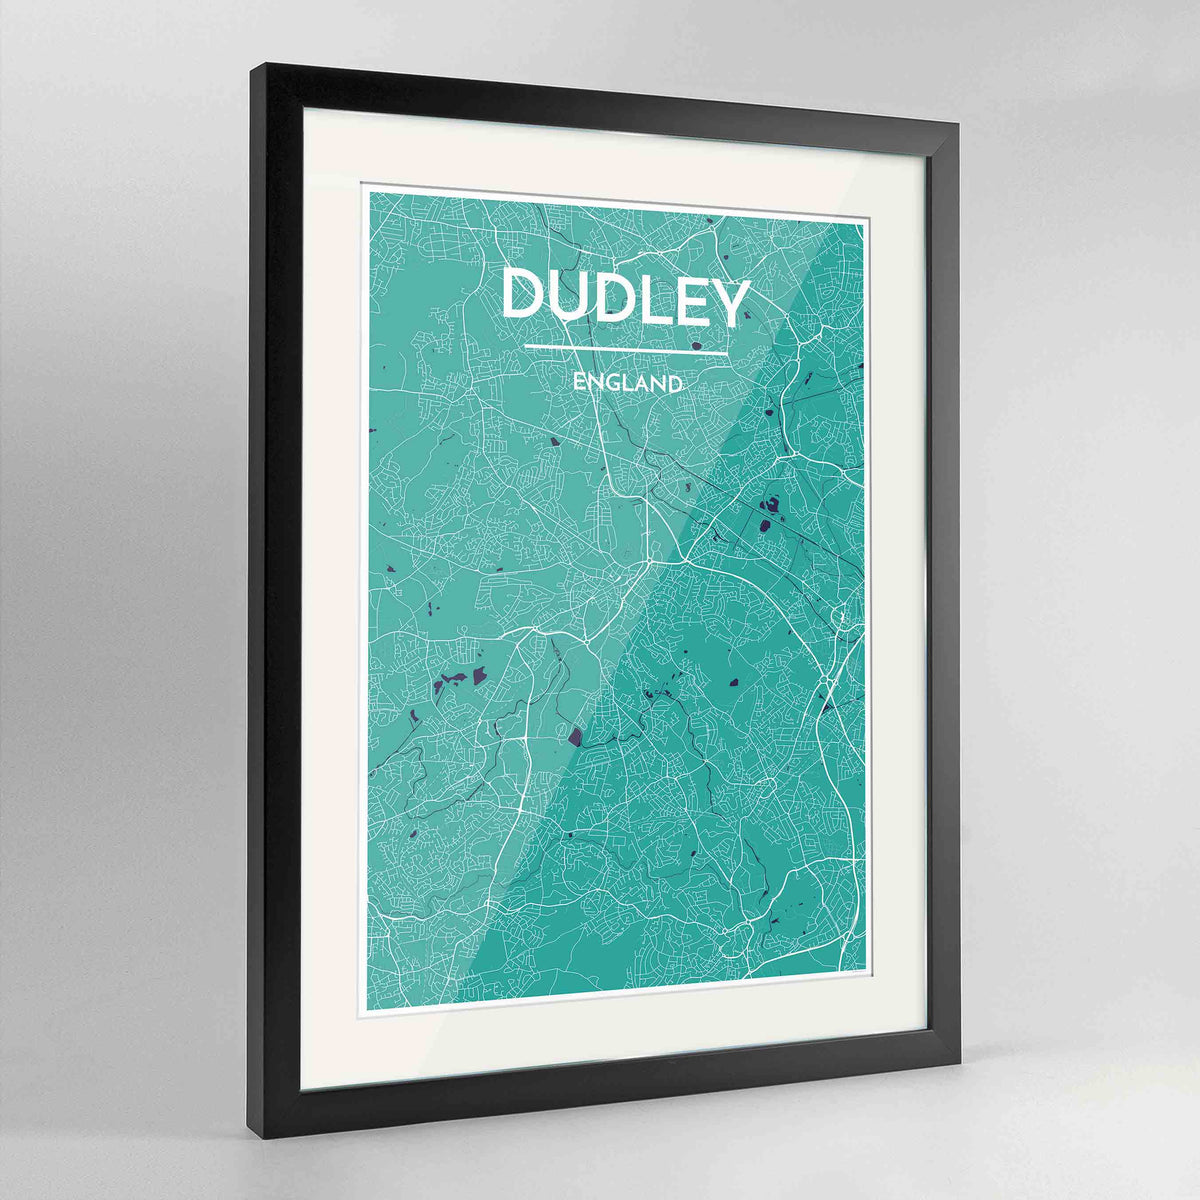 "Framed Dudley Map Art Print 24x36"" Contemporary Black frame Point Two Design Group"